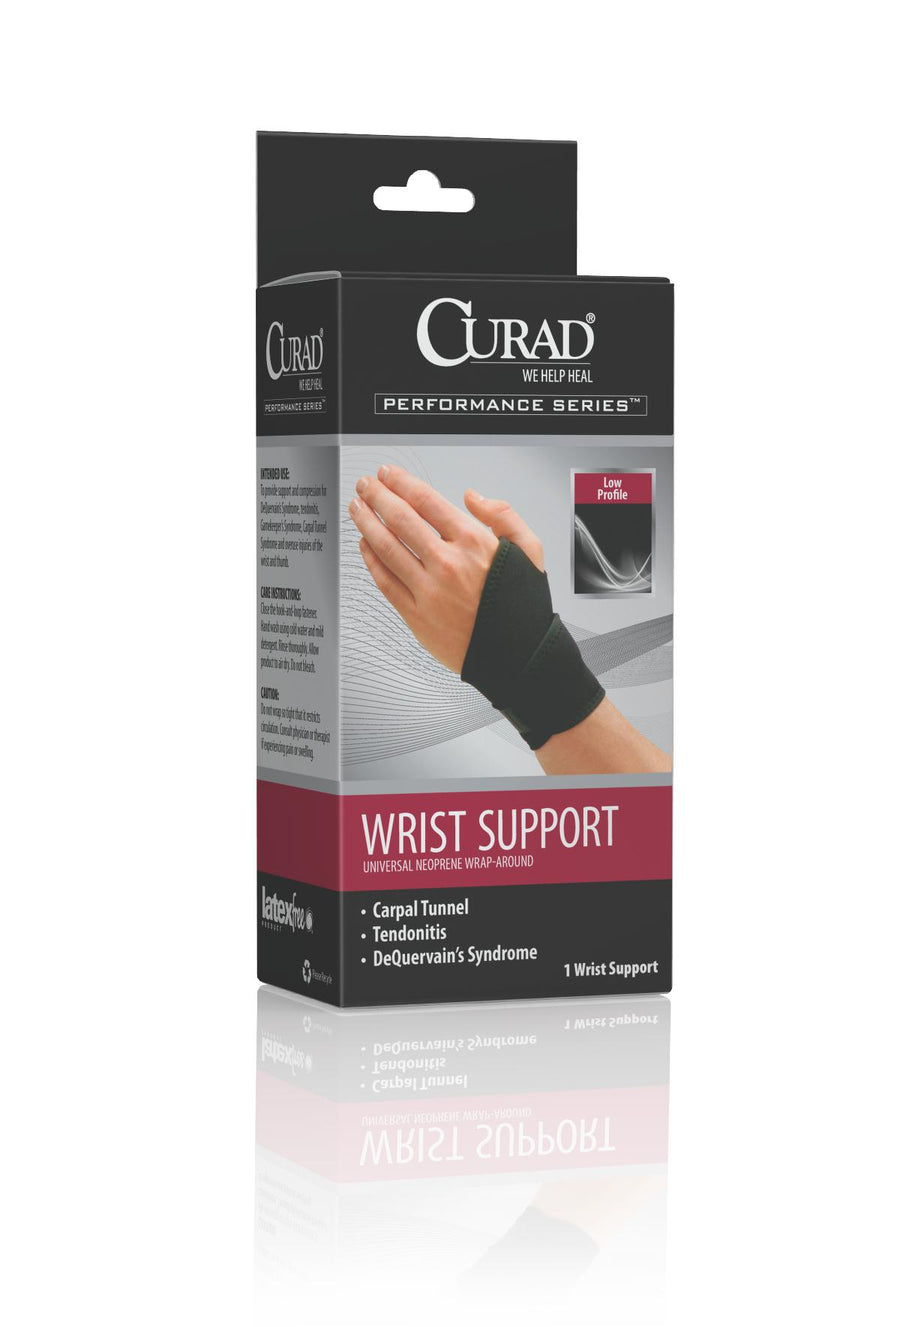 CURAD Universal Wrap-Around Wrist Supports,Universal, Case of 4